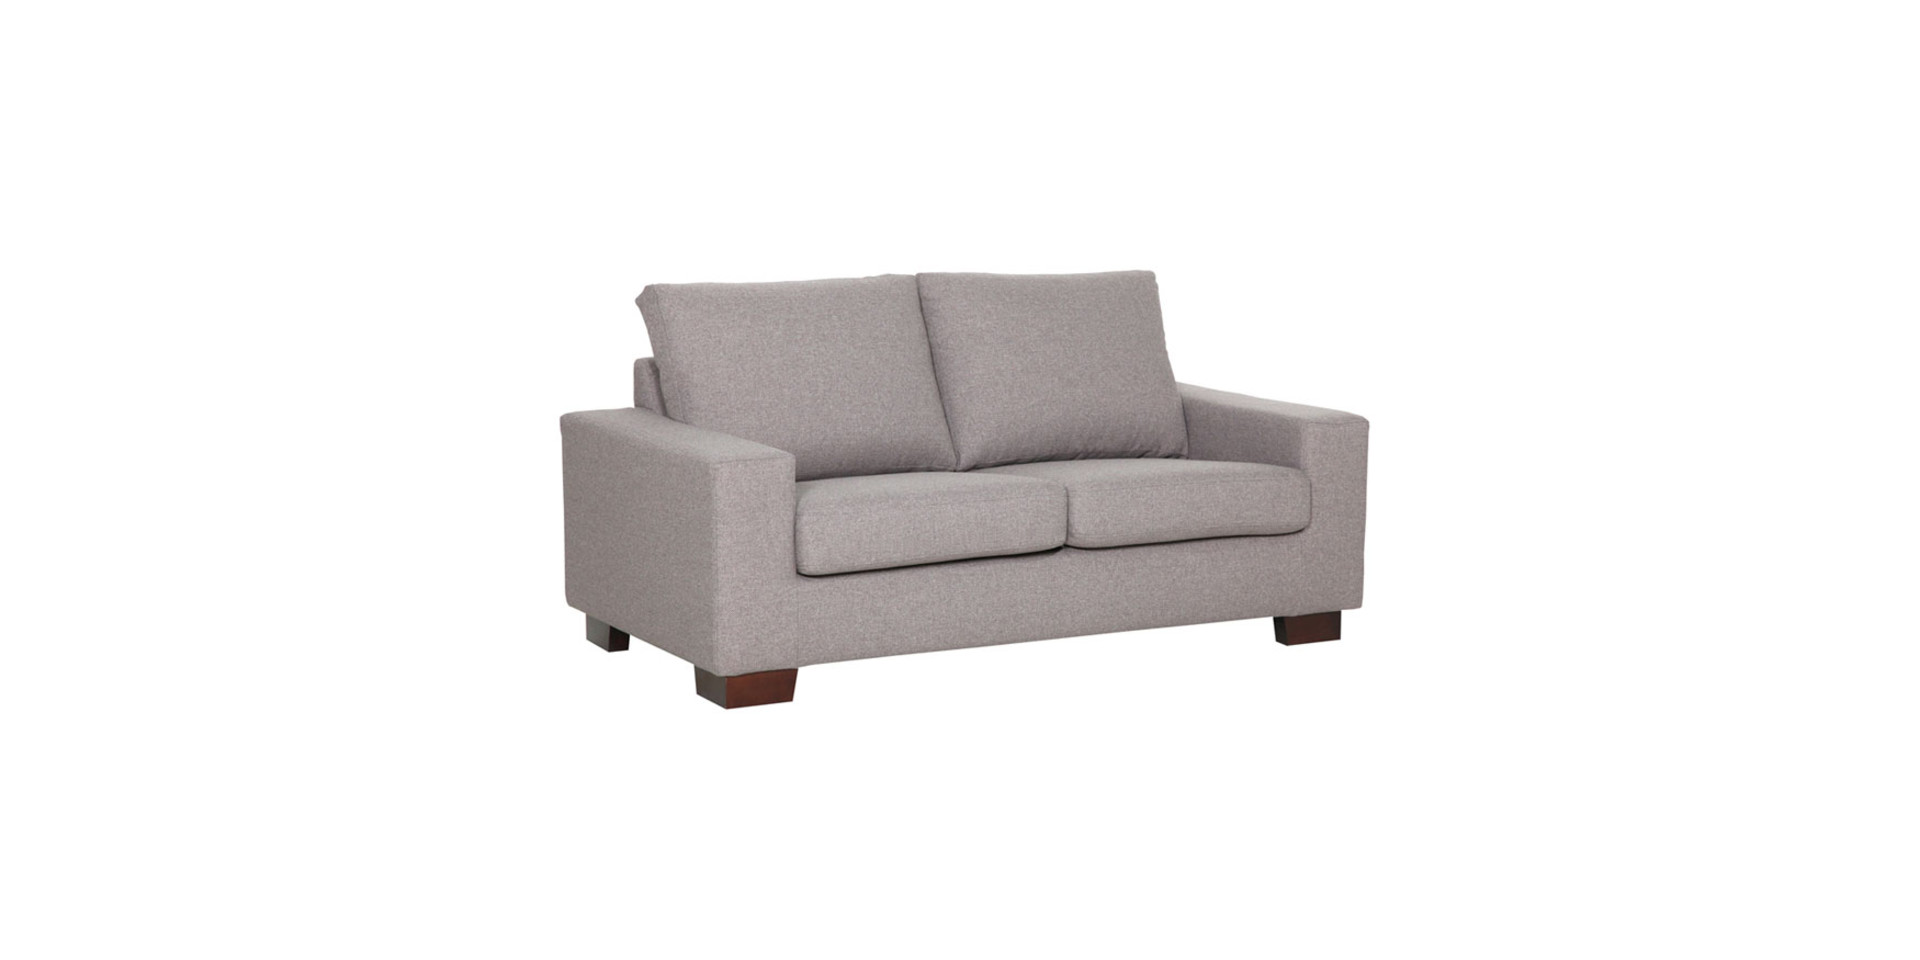 sits-quick-canape-2seater_pacad8d8grey_2_0